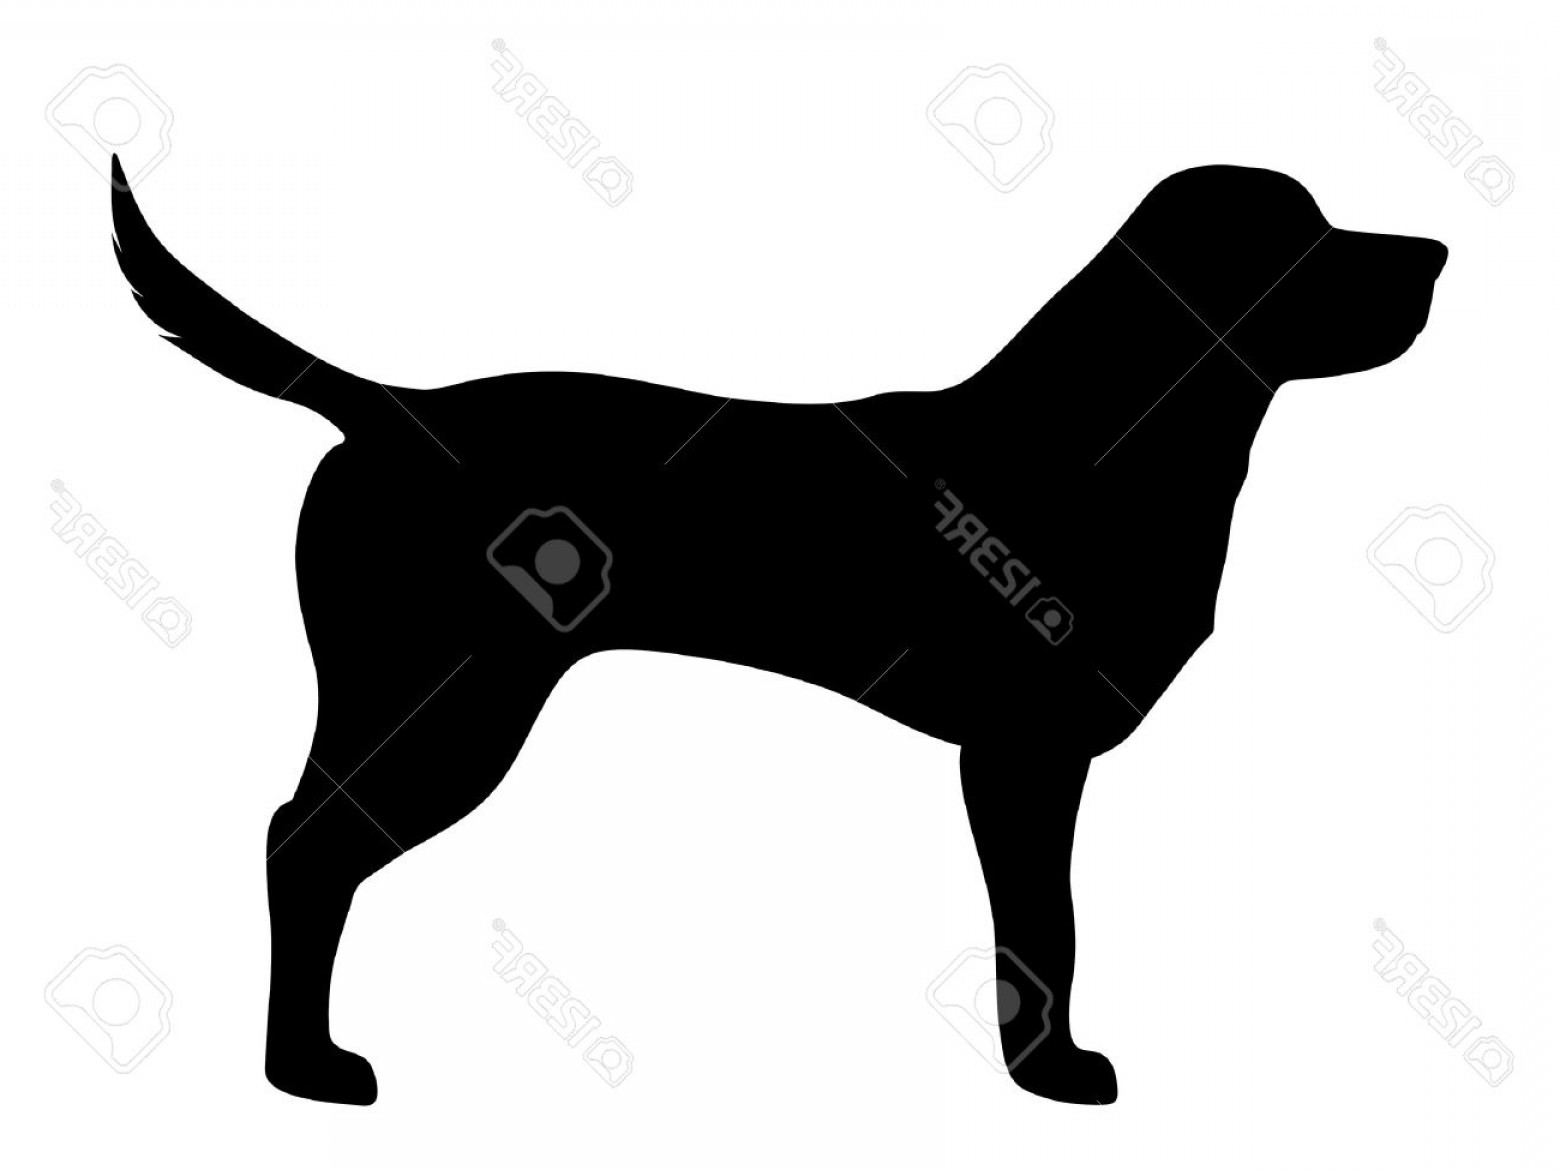 Labrador Silhouette Vector: Photostock Vector Vector Black Silhouette Of A Labrador Retriever Dog Isolated On A White Background